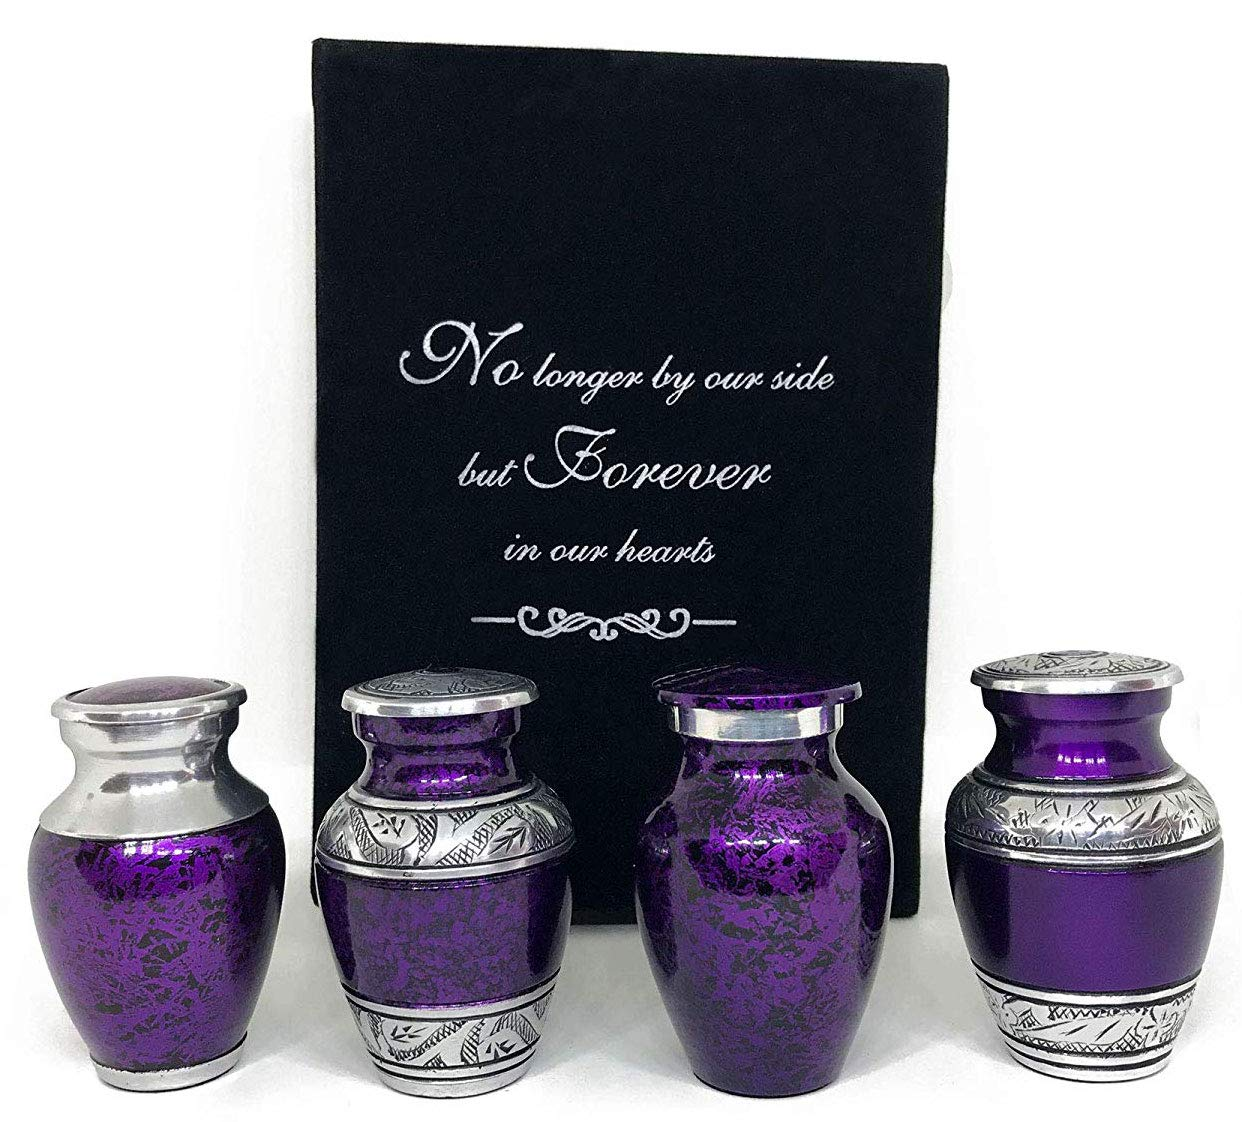 SolaceForever Mini Cremation Keepsake Urns for Human Ashes - Beautiful Small Urns Color Purple Set of 4 with Premium Case - Handcrafted Cremation Urns for Ashes - A Lasting Tribute to Your Loved One